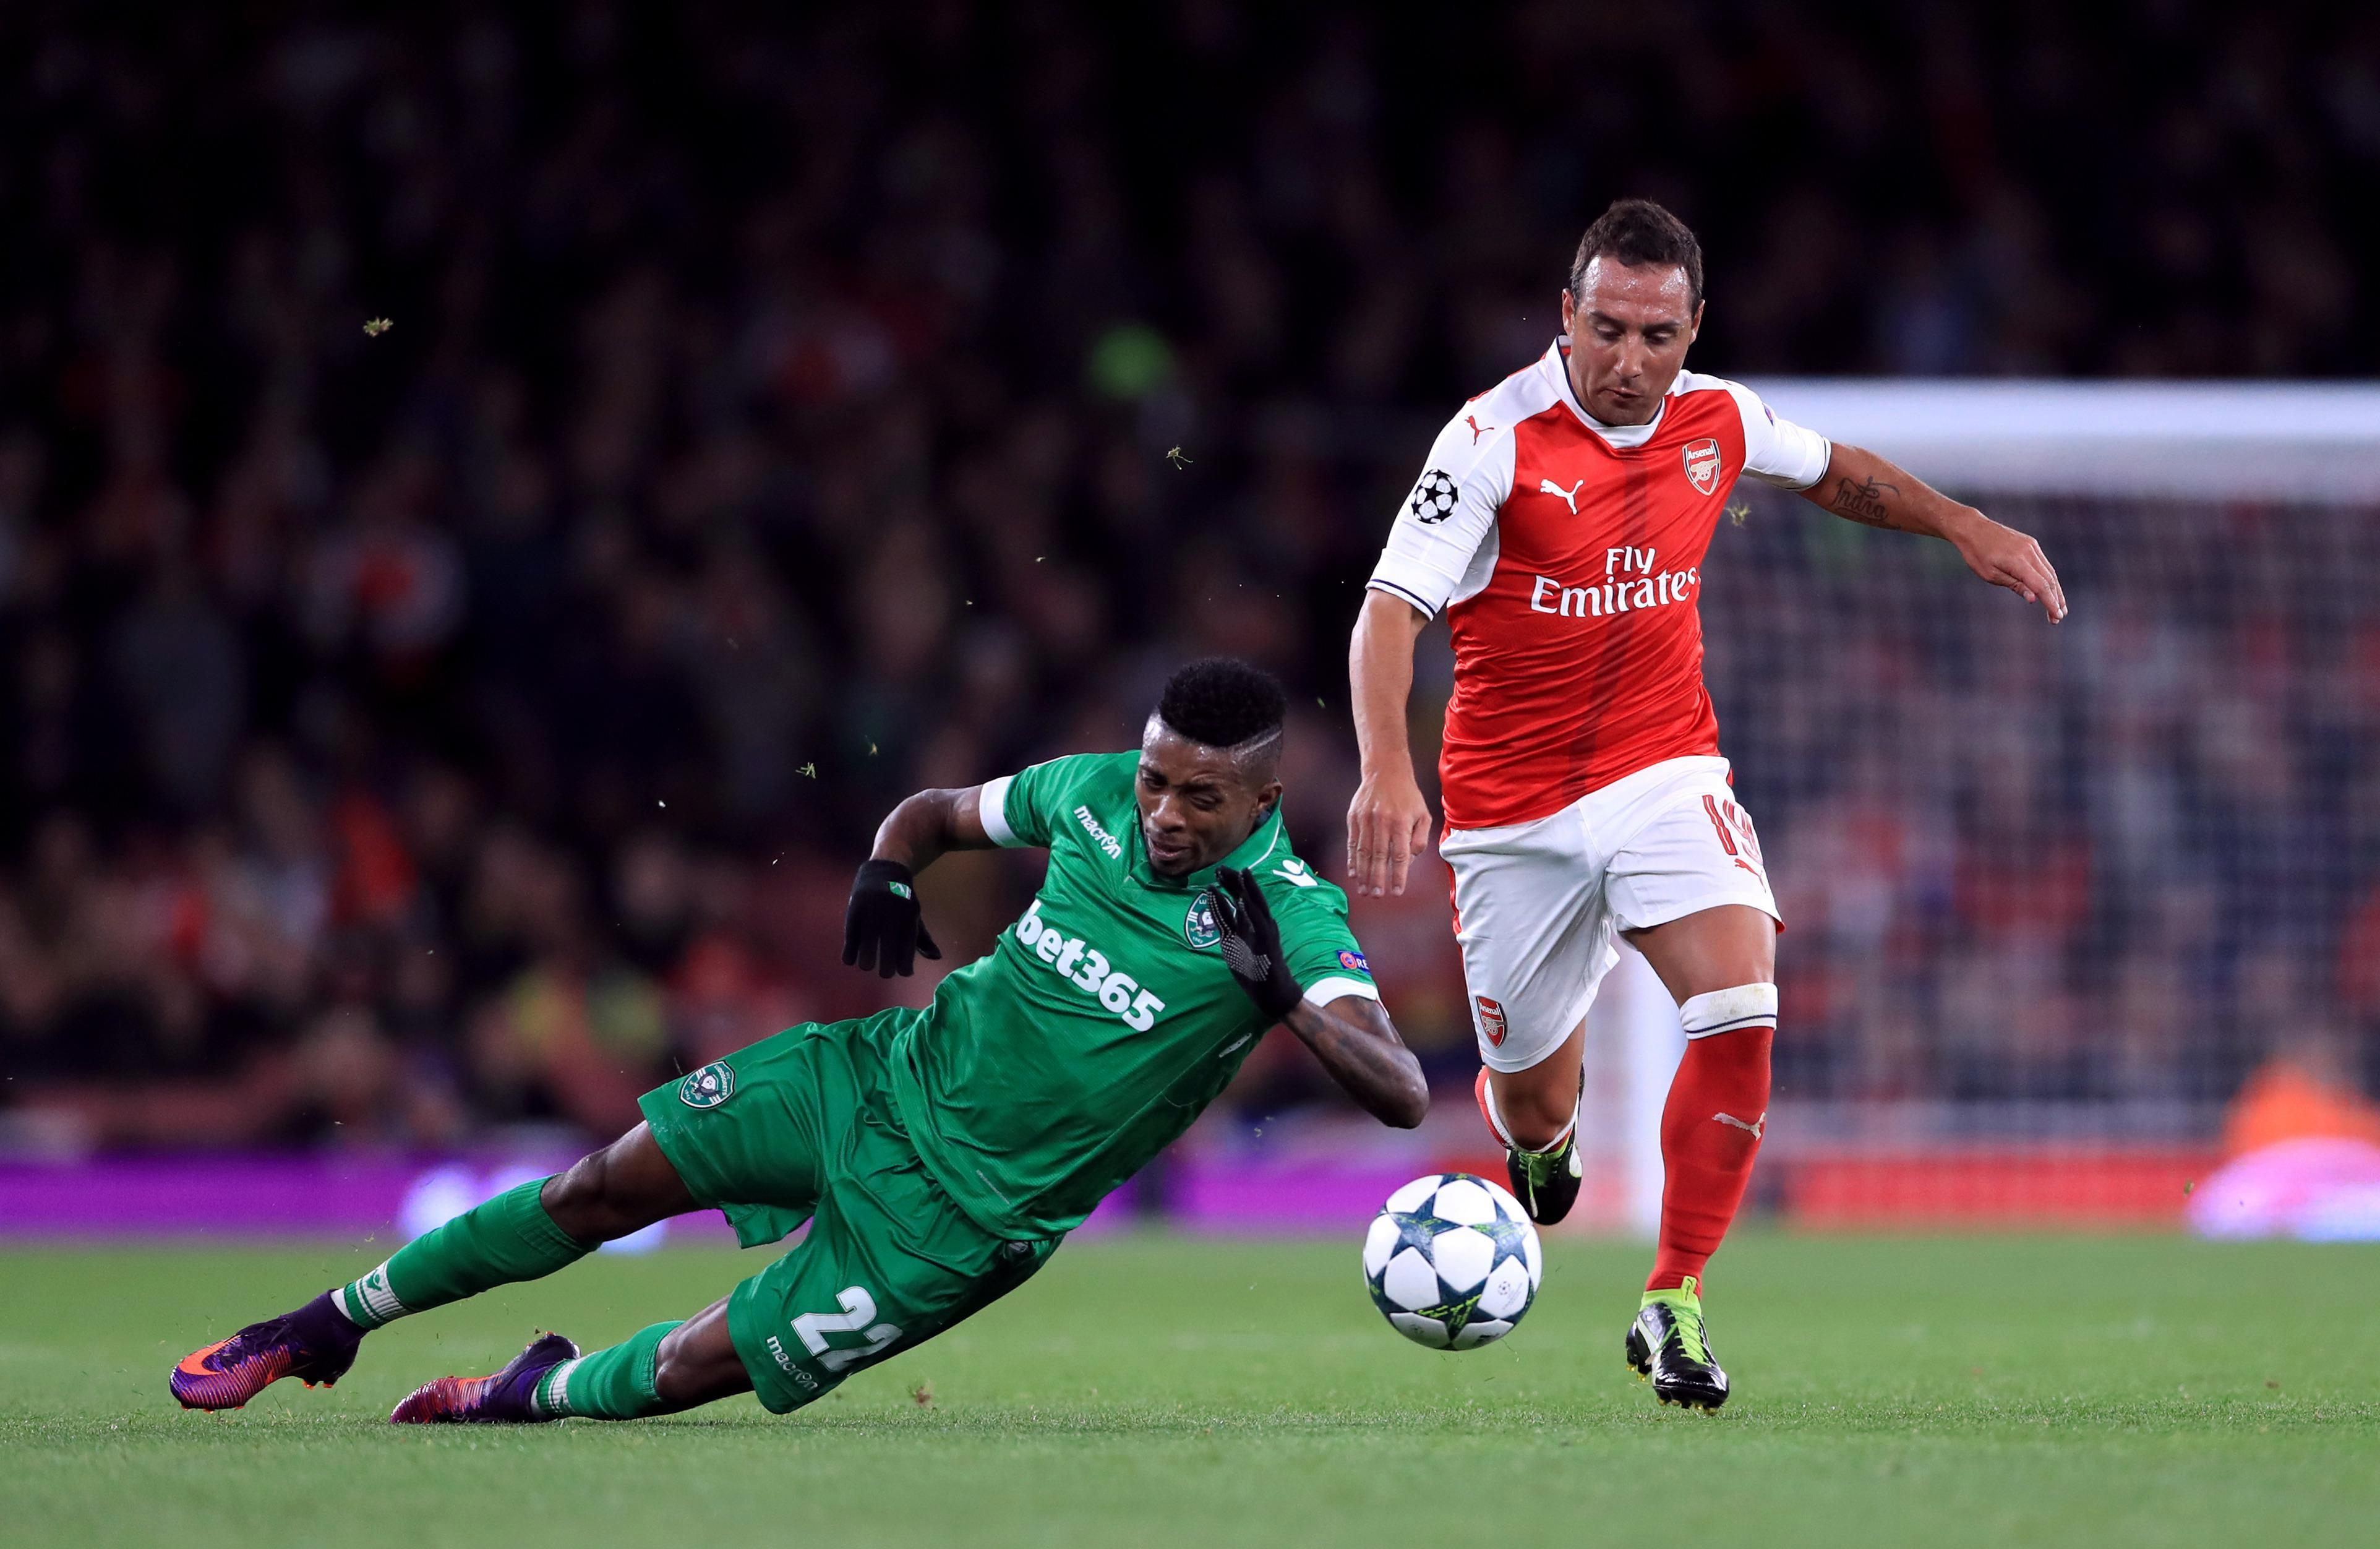 Santi Cazorla hasn't played since injuring himself against Ludogorets in October